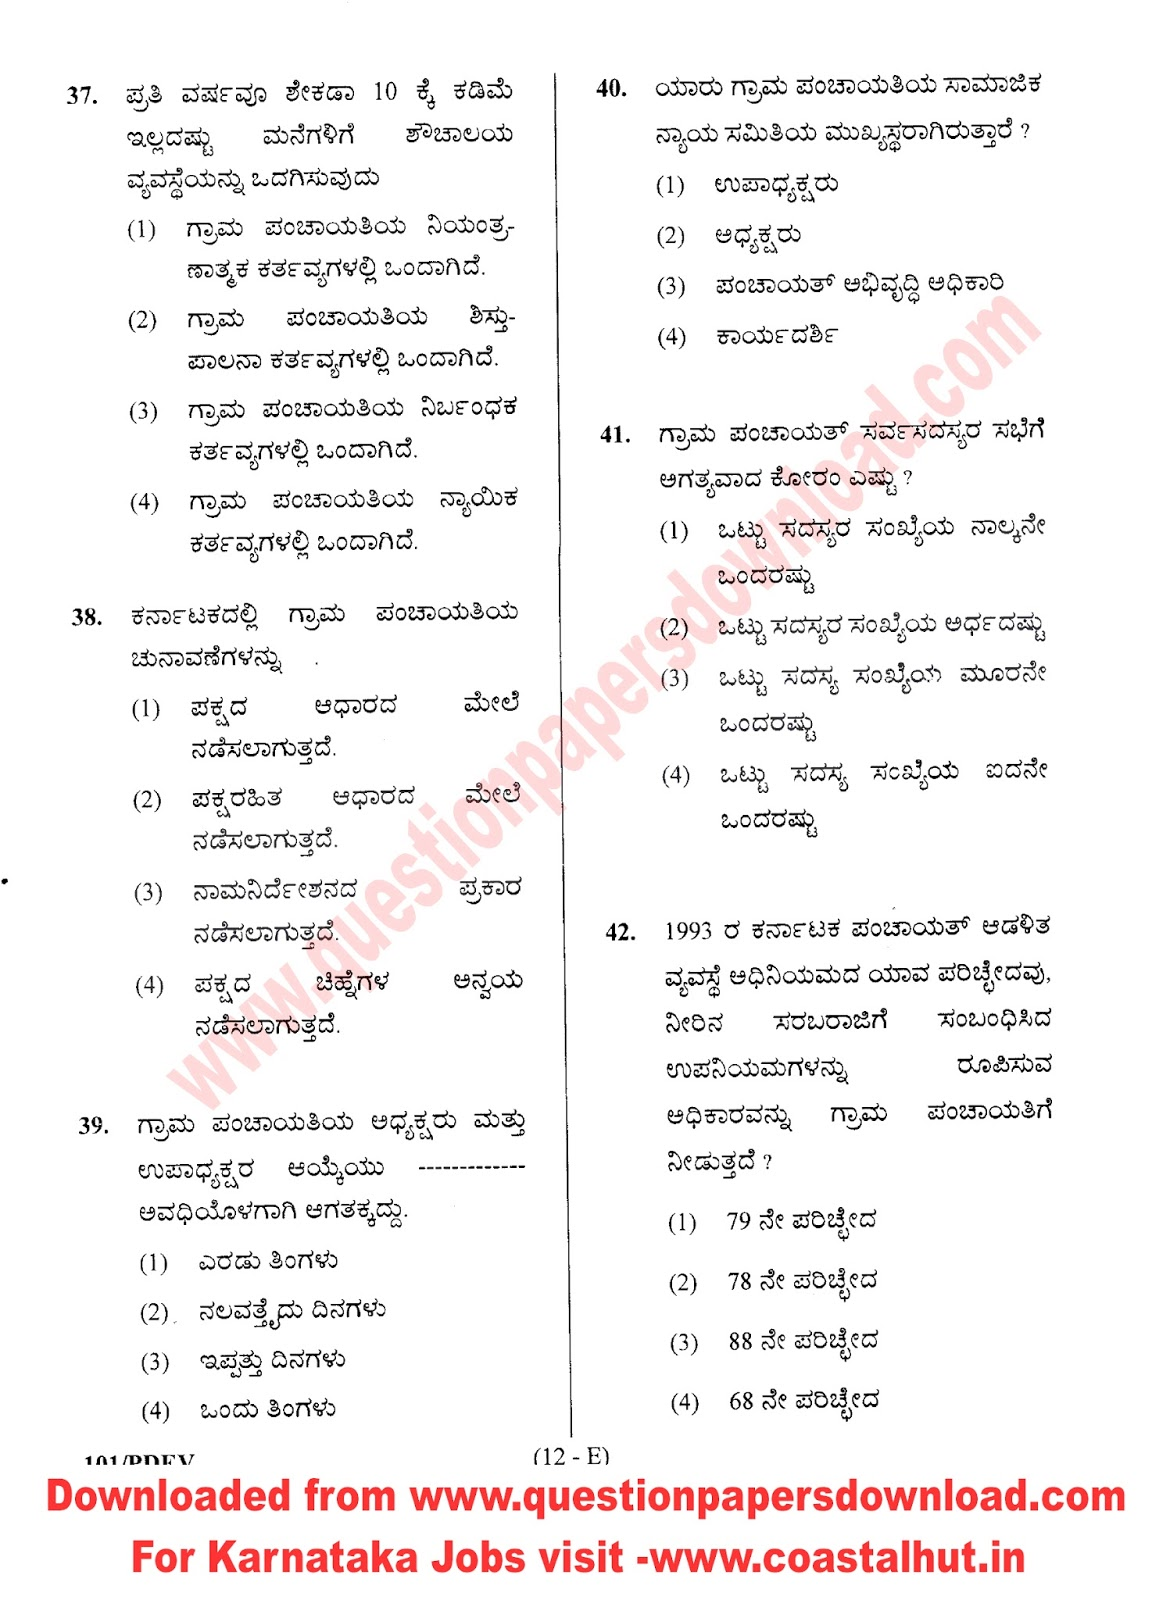 Question Papers Download Rural Development And Panchayat Raj Questions Pdo Exam Question Paper